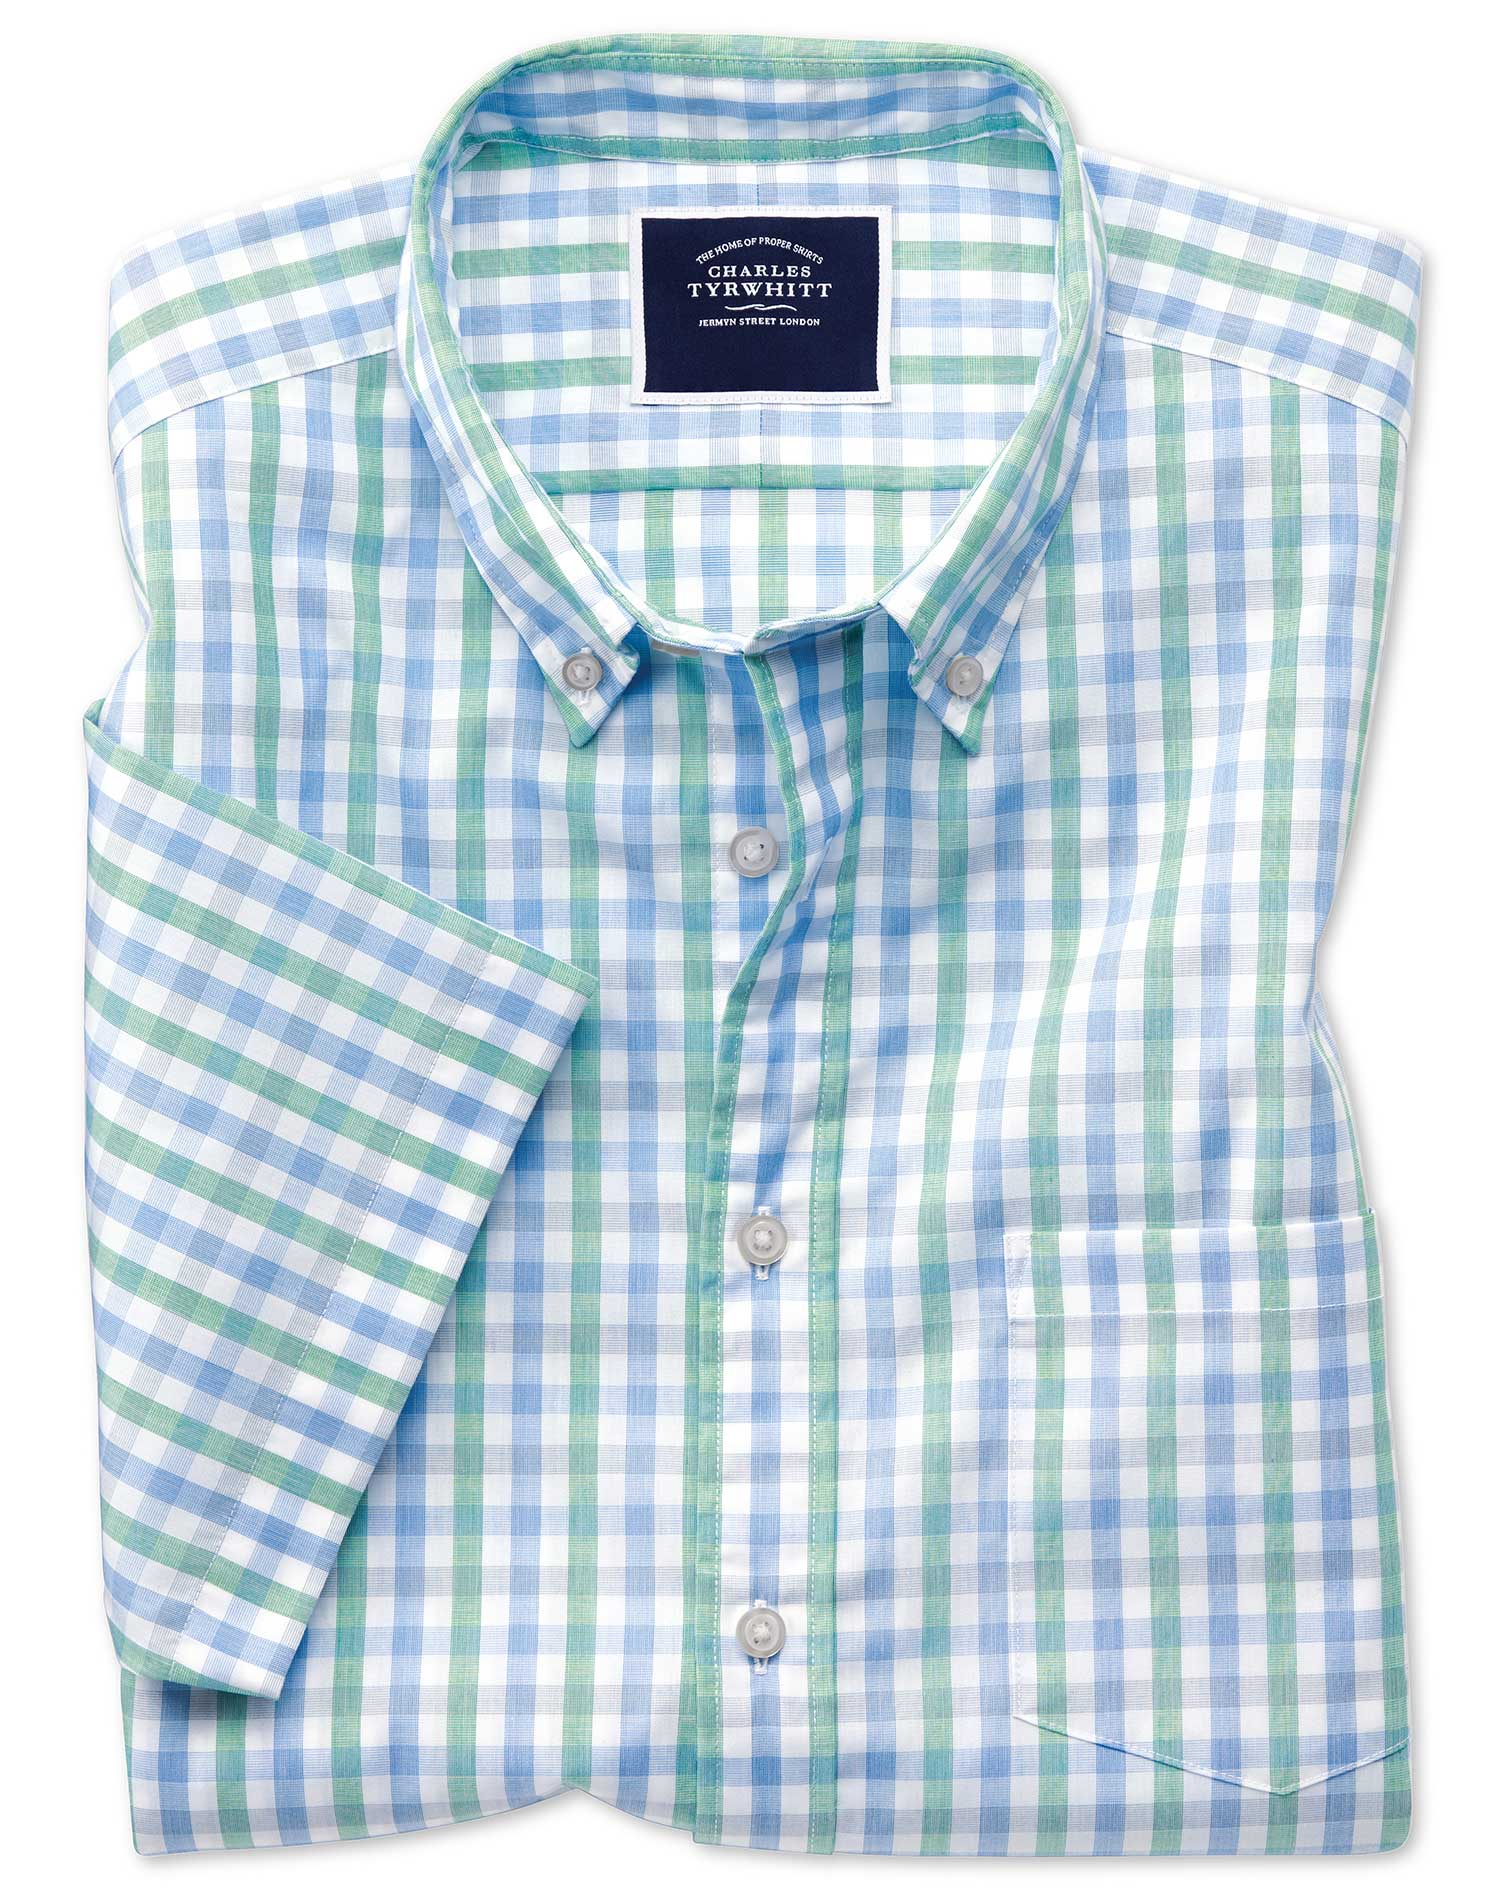 Classic Fit Green and Blue Short Sleeve Gingham Soft Washed Non-Iron Tyrwhitt Cool Cotton Shirt Sing